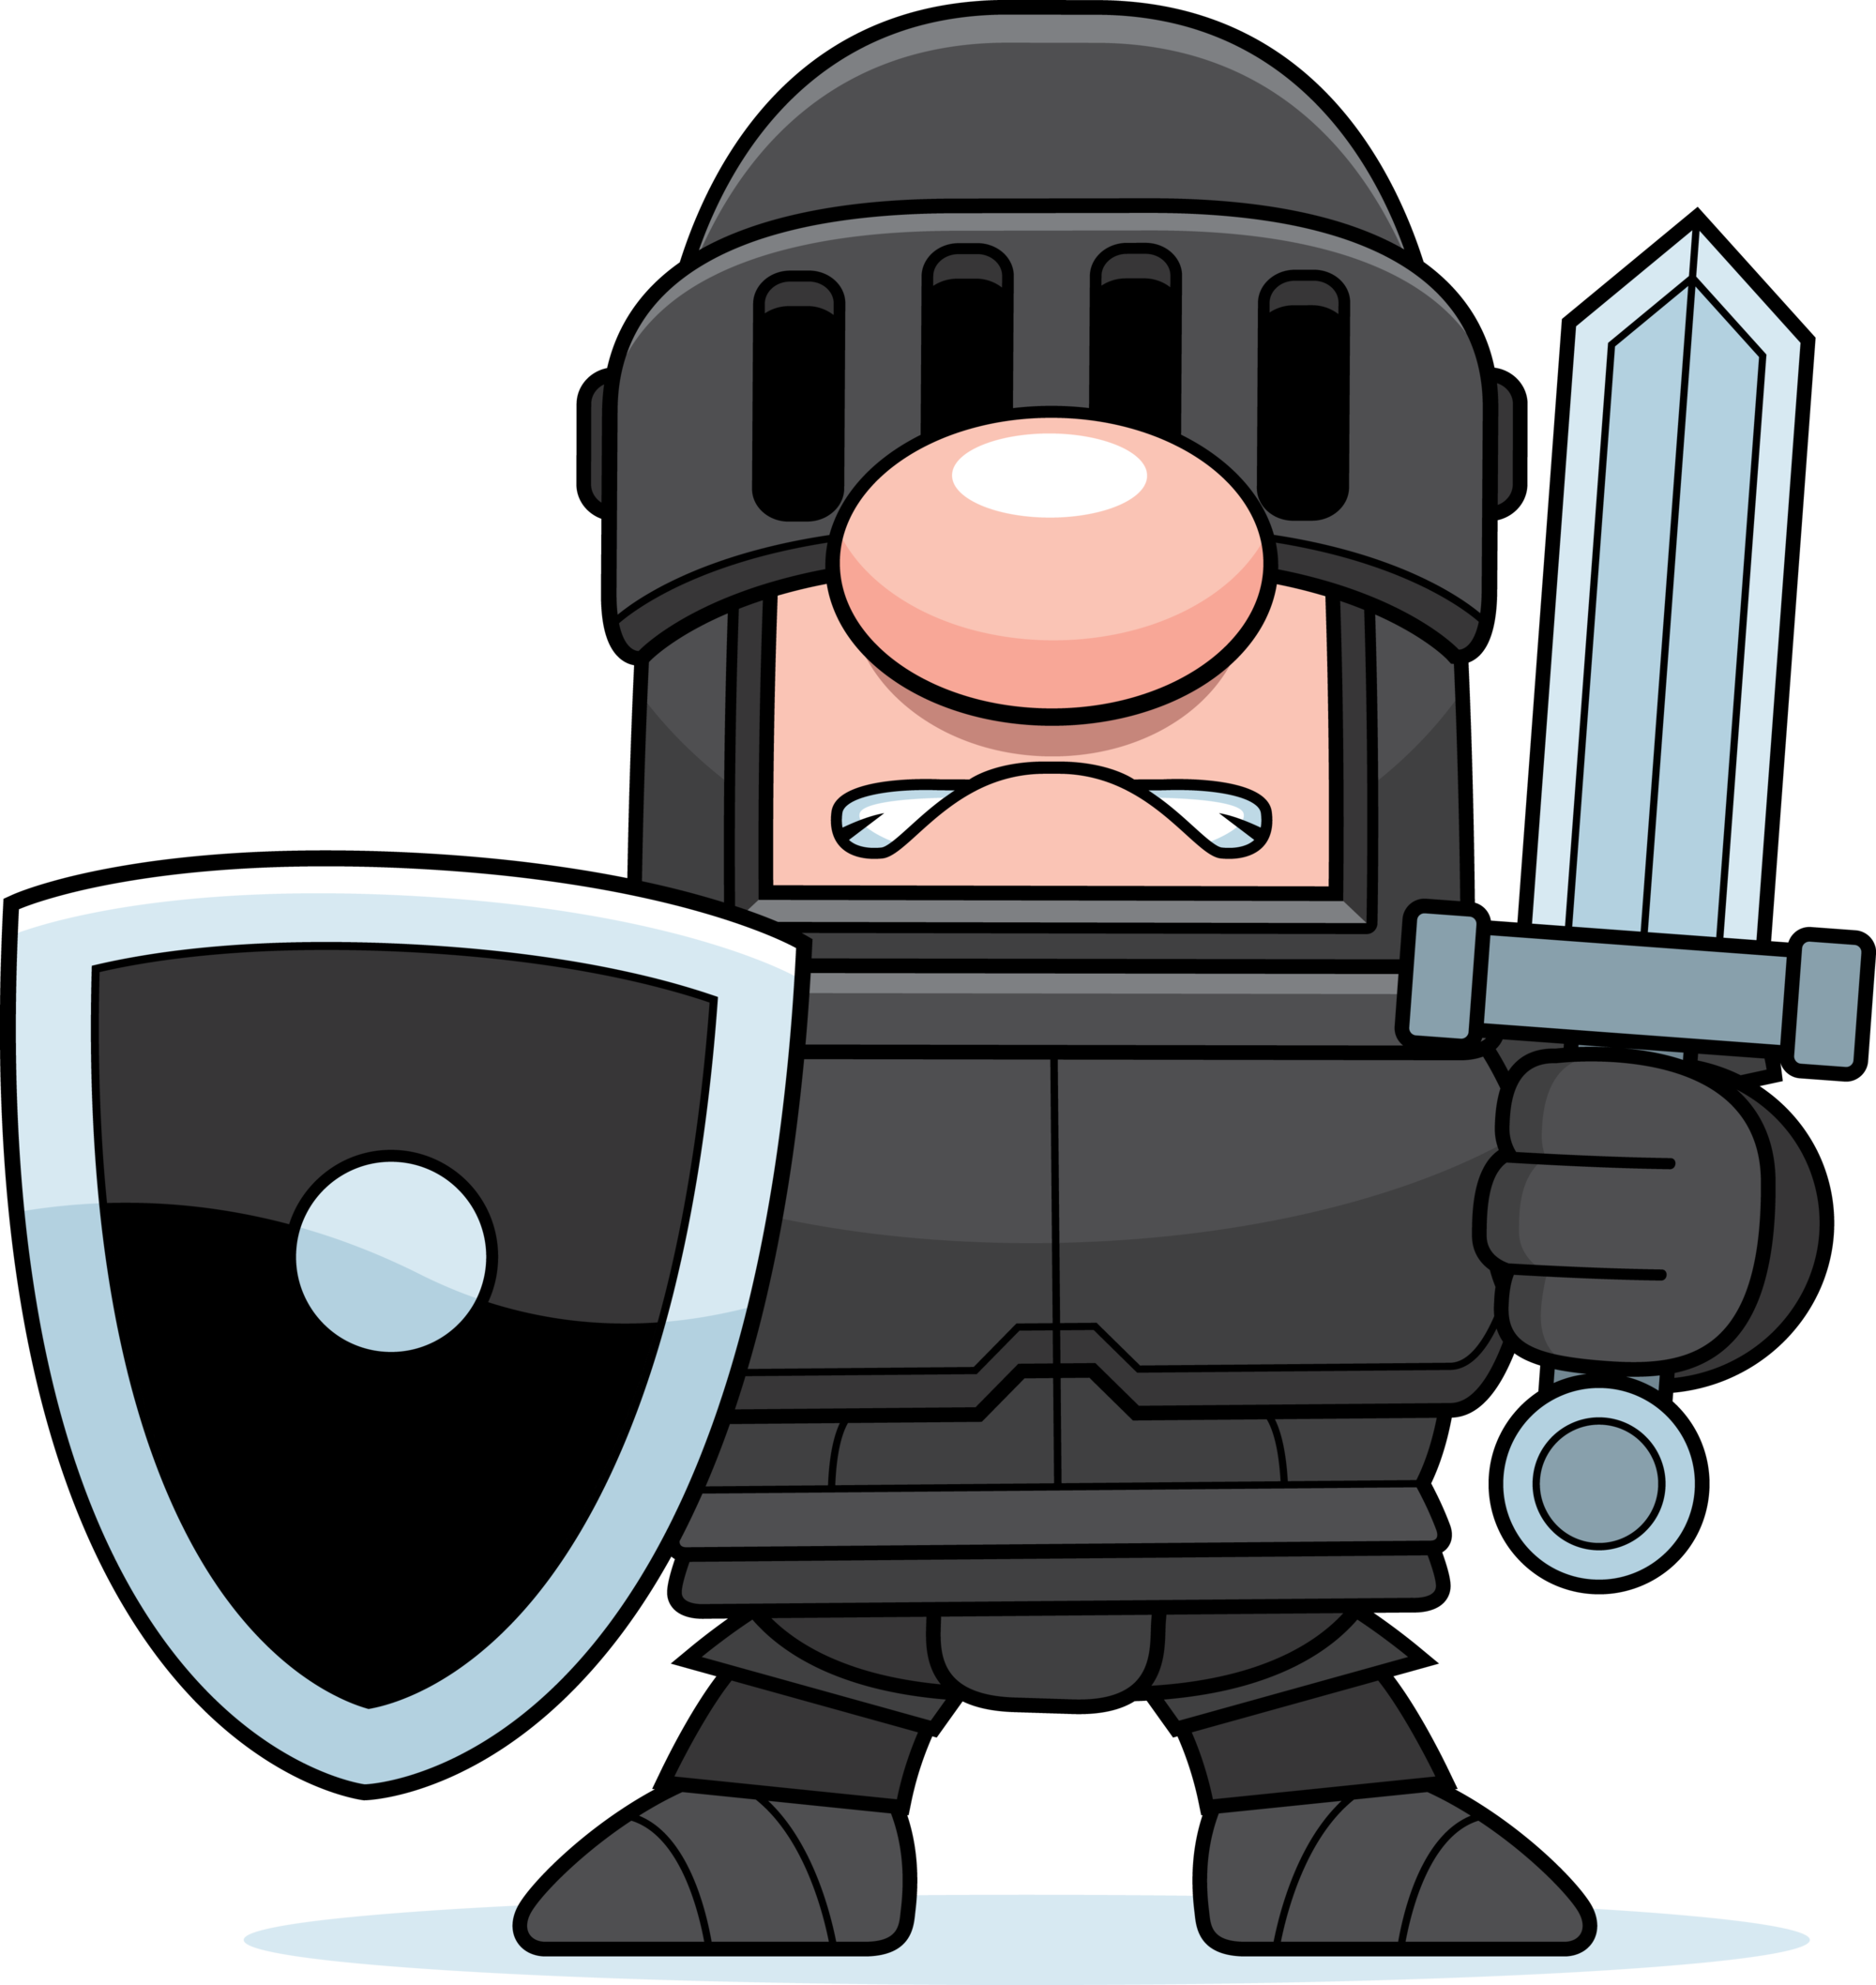 Artificial Intelligence, Javascript, Game, Coding, - Suit Of Armor Cartoon (2000x2116)